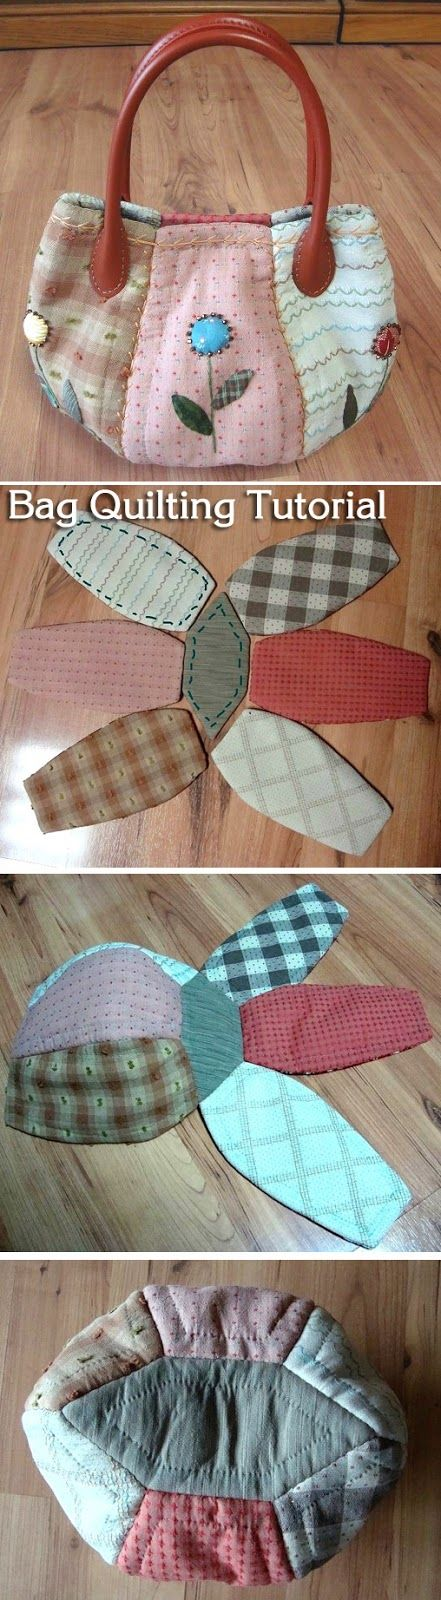 Simple and convenient bag. Patchwork, Quilting. DIY Picture Tutorial. Простая и удобная сумка. Лоскутное шитьё (пэчворк, квилтинг). http://www.handmadiya.com/2015/09/simple-bag-quilting.html